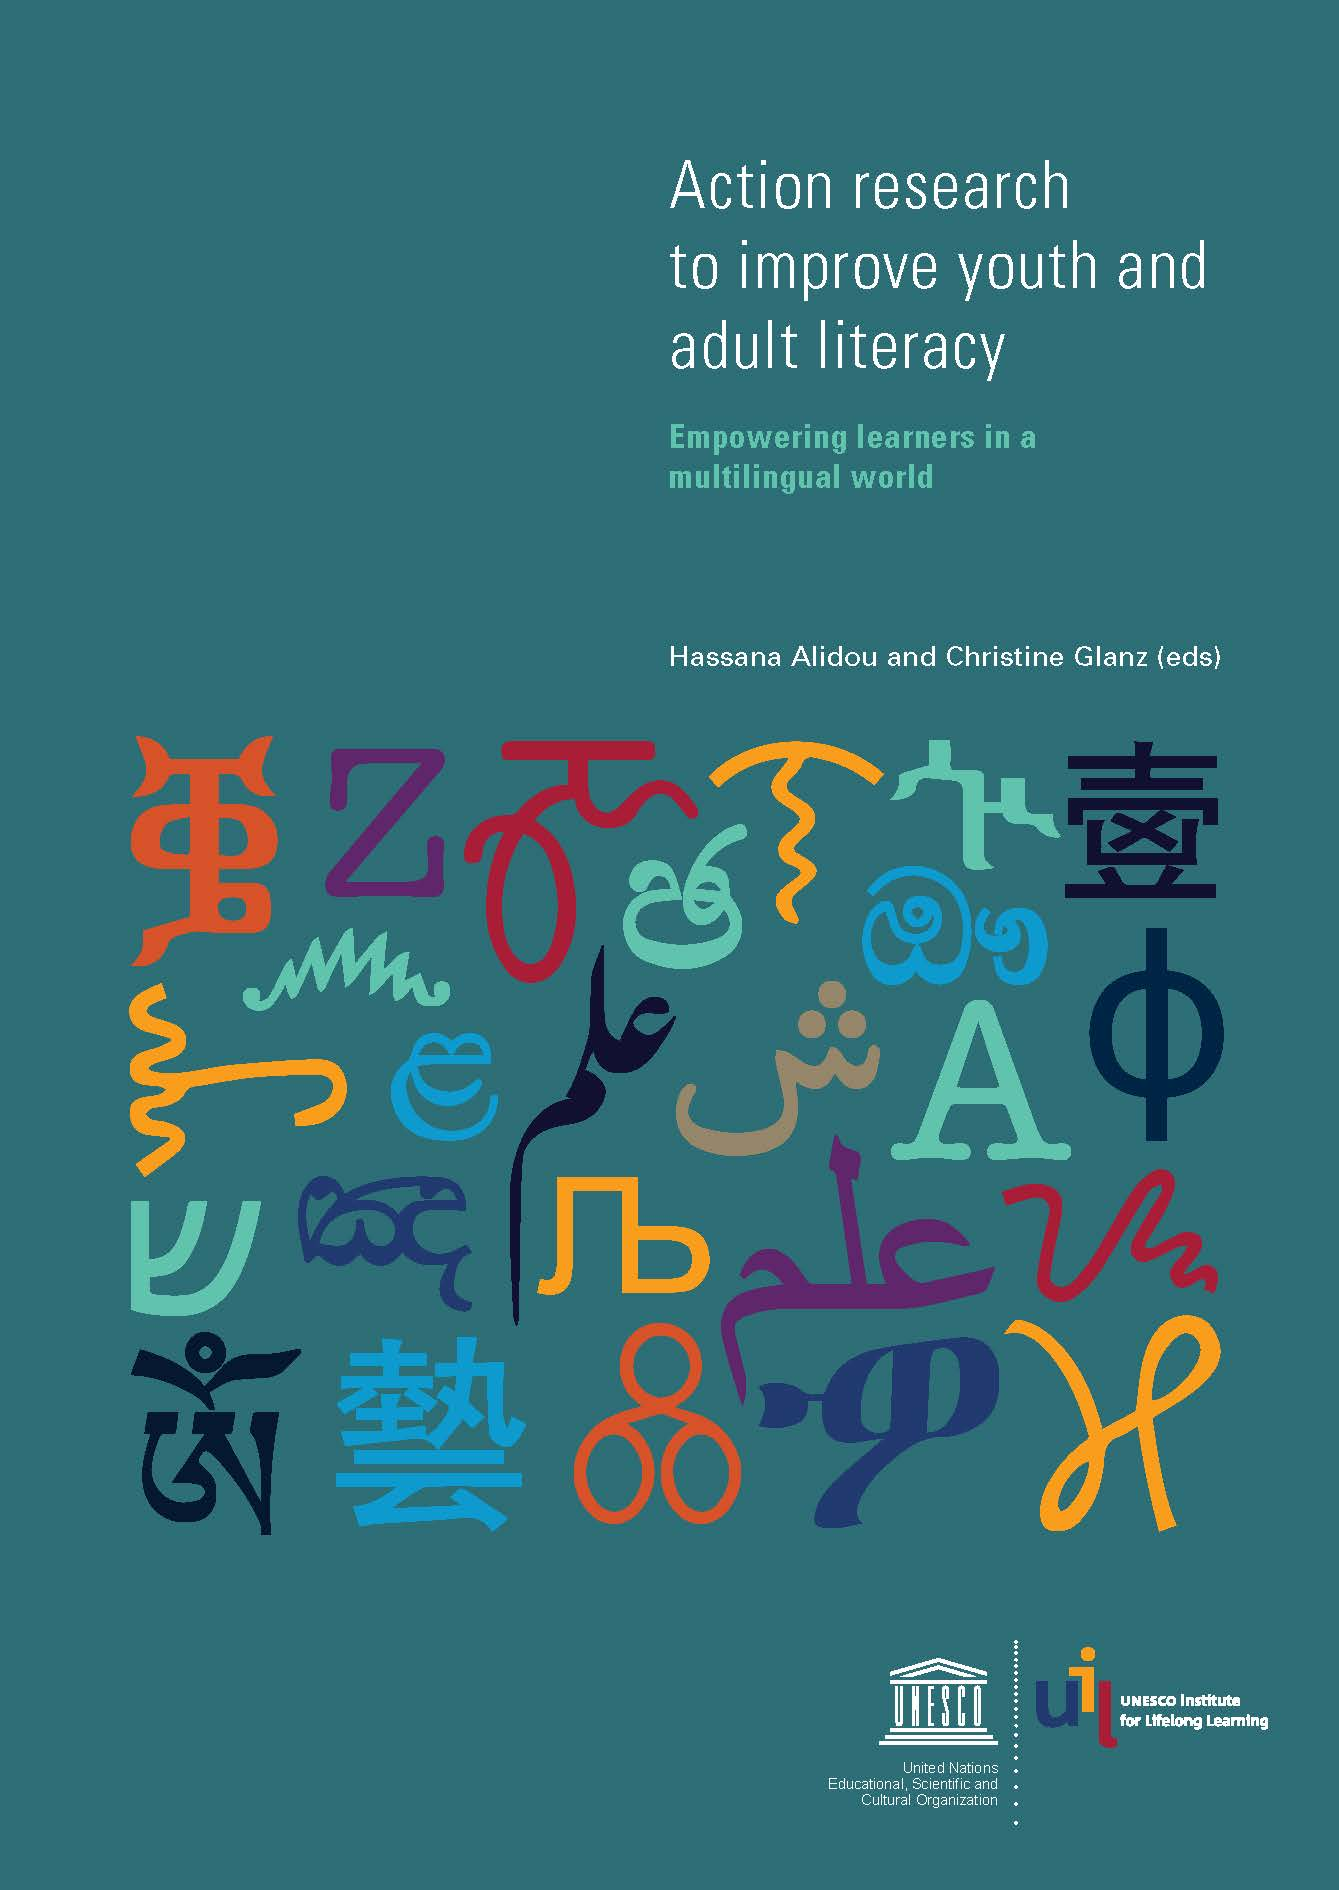 Action Research to Improve Youth and Adult Literacy: Empowering Learners in a Multilingual World